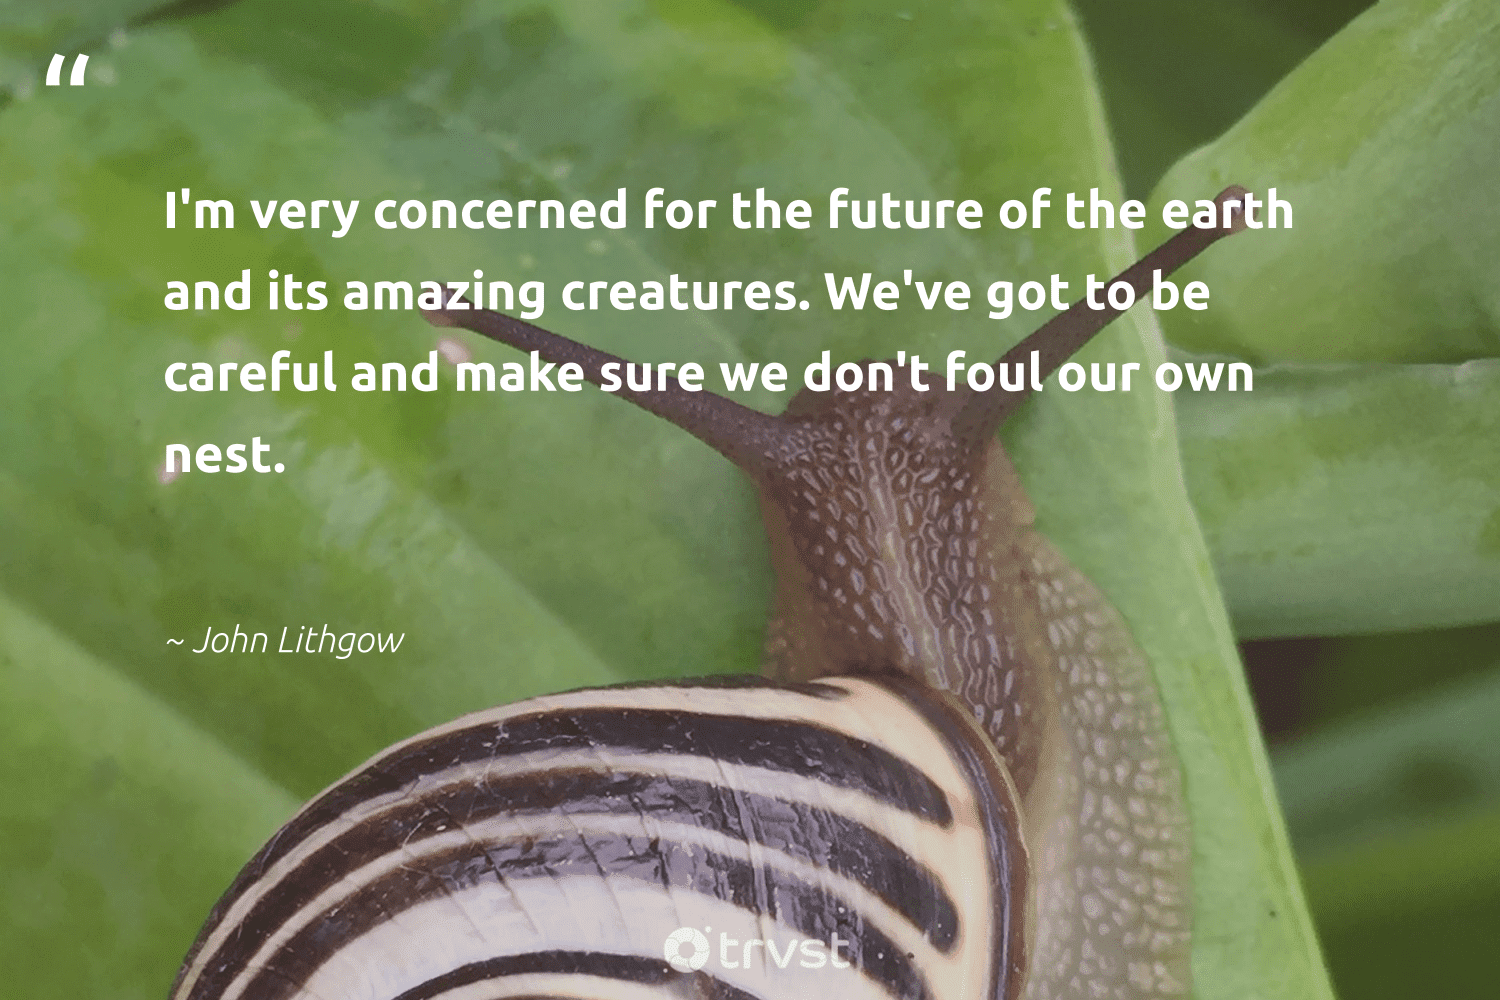 """""""I'm very concerned for the future of the earth and its amazing creatures. We've got to be careful and make sure we don't foul our own nest.""""  - John Lithgow #trvst #quotes #earth #mothernature #science #wildlifeplanet #dosomething #conservation #palaeontology #green #planetearthfirst #planet"""